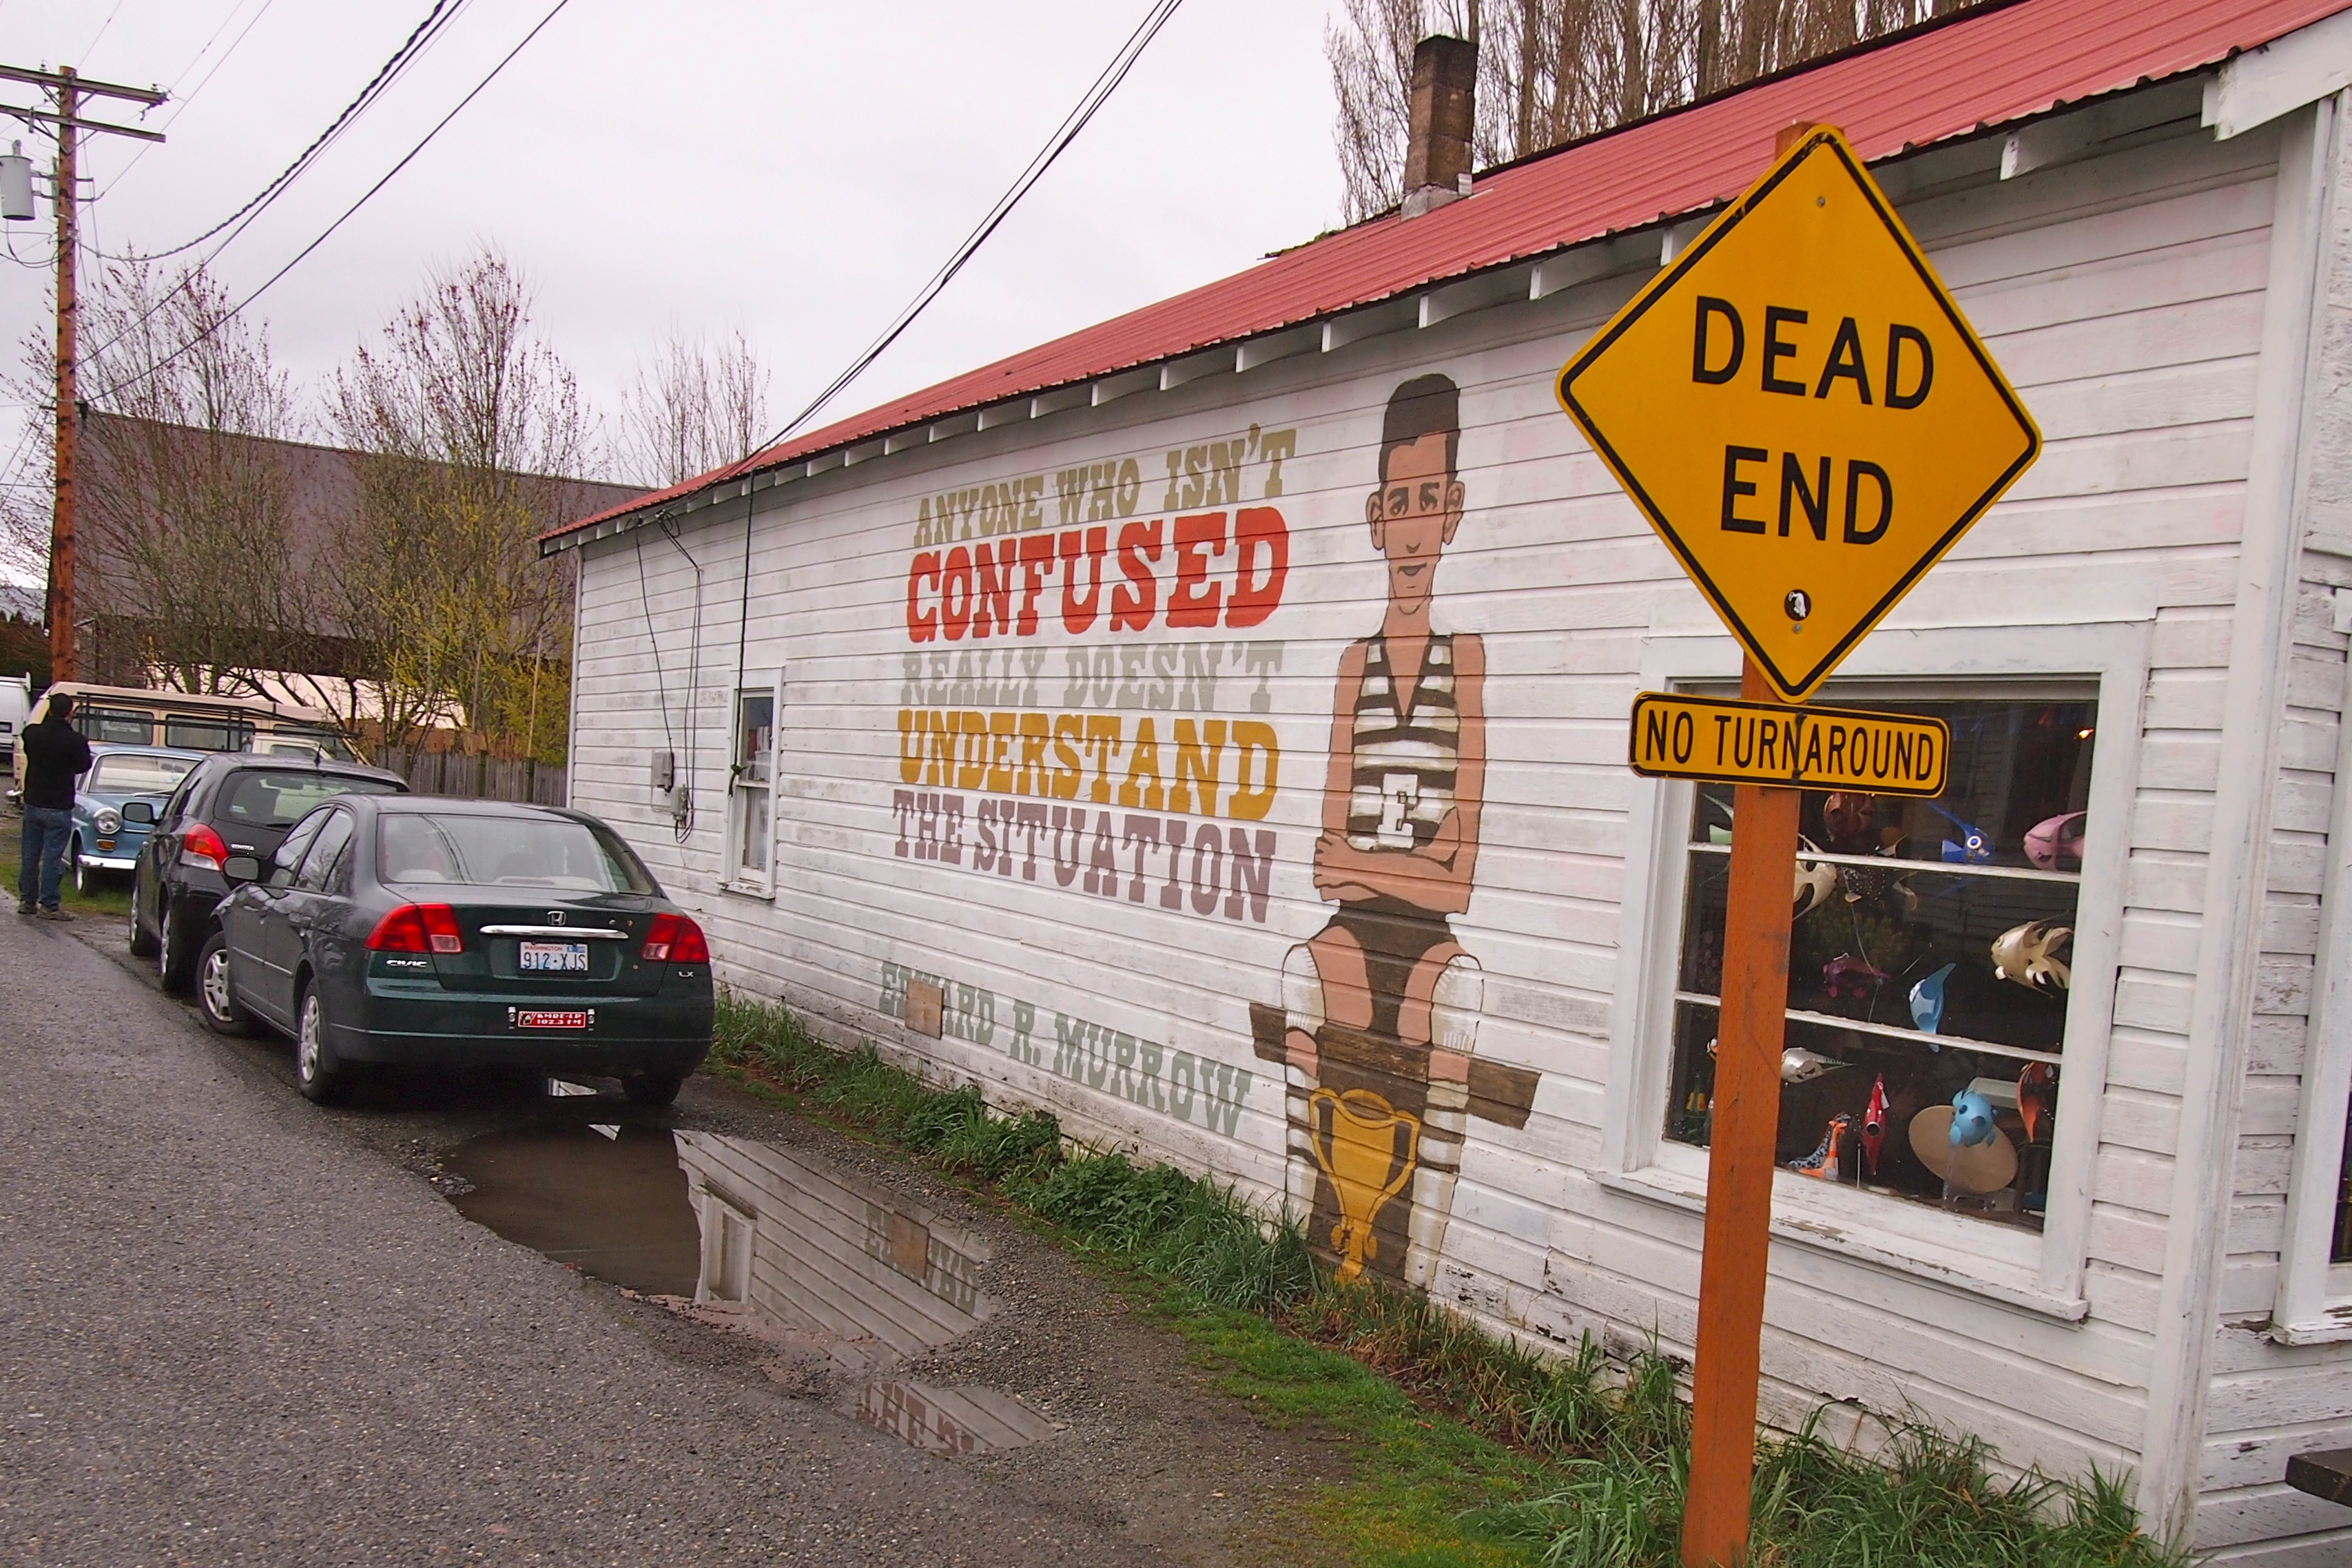 Mural says - Anyone who isn't confused really doesn't understand the situation